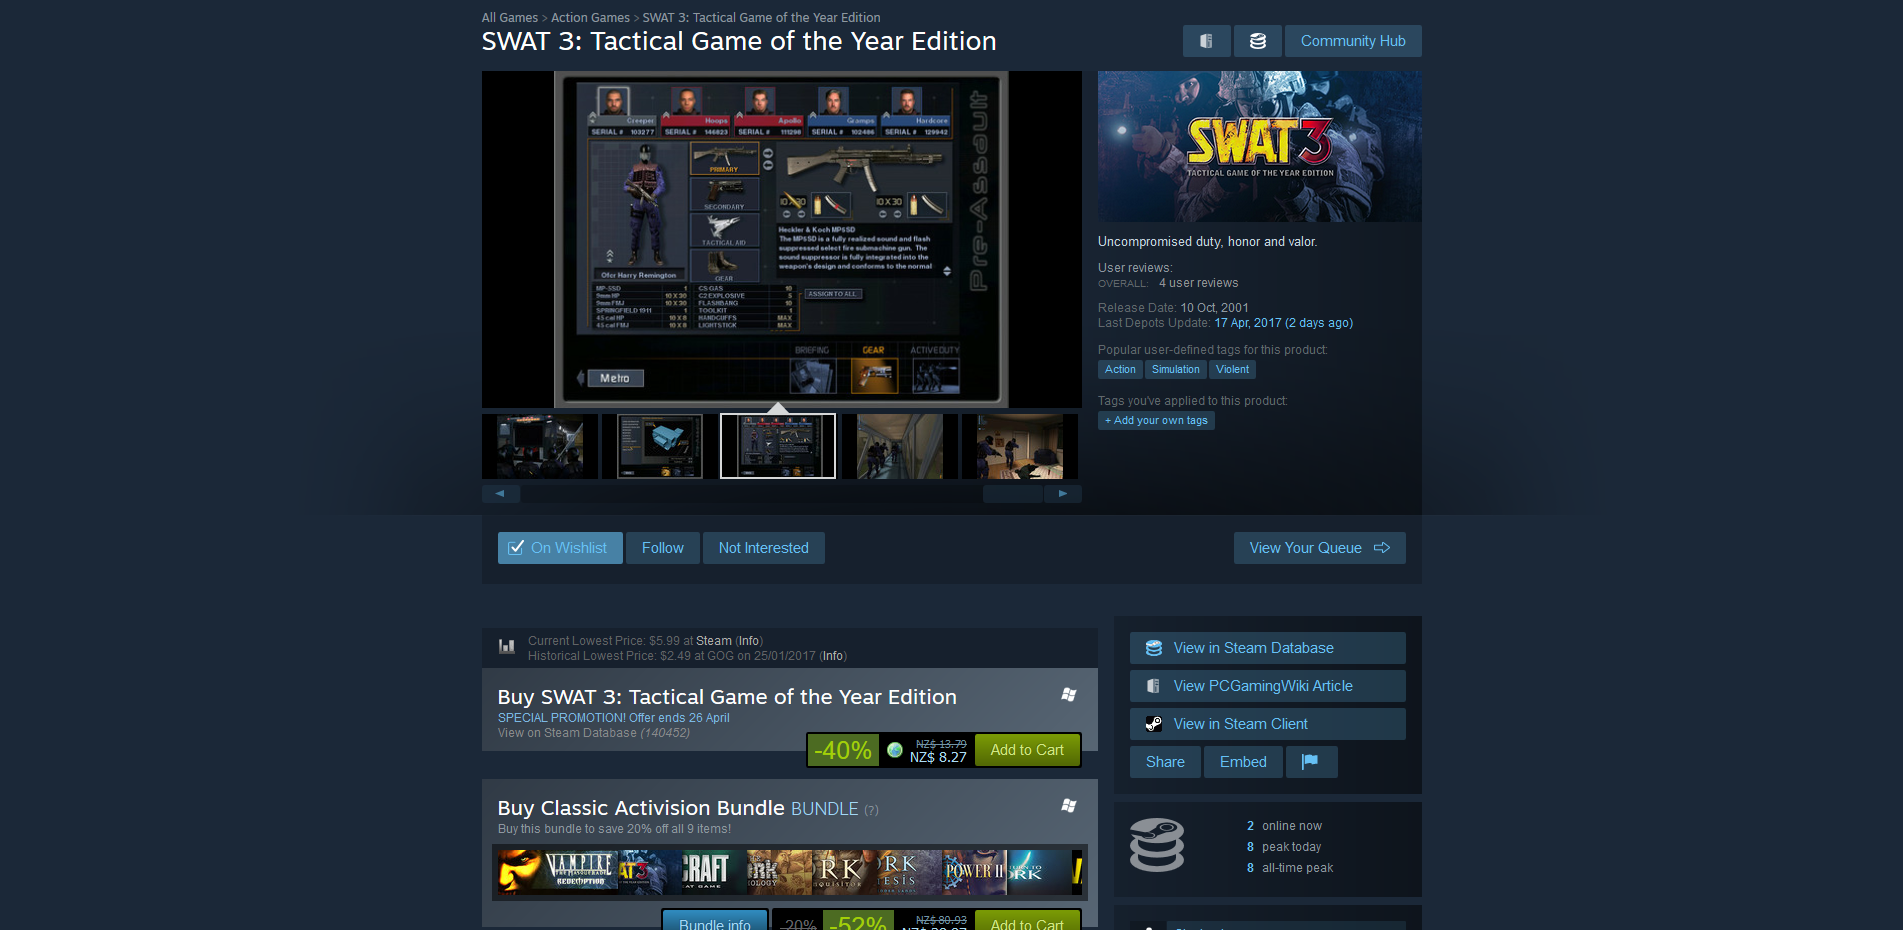 swat 3 tactical game of the year edition-gog